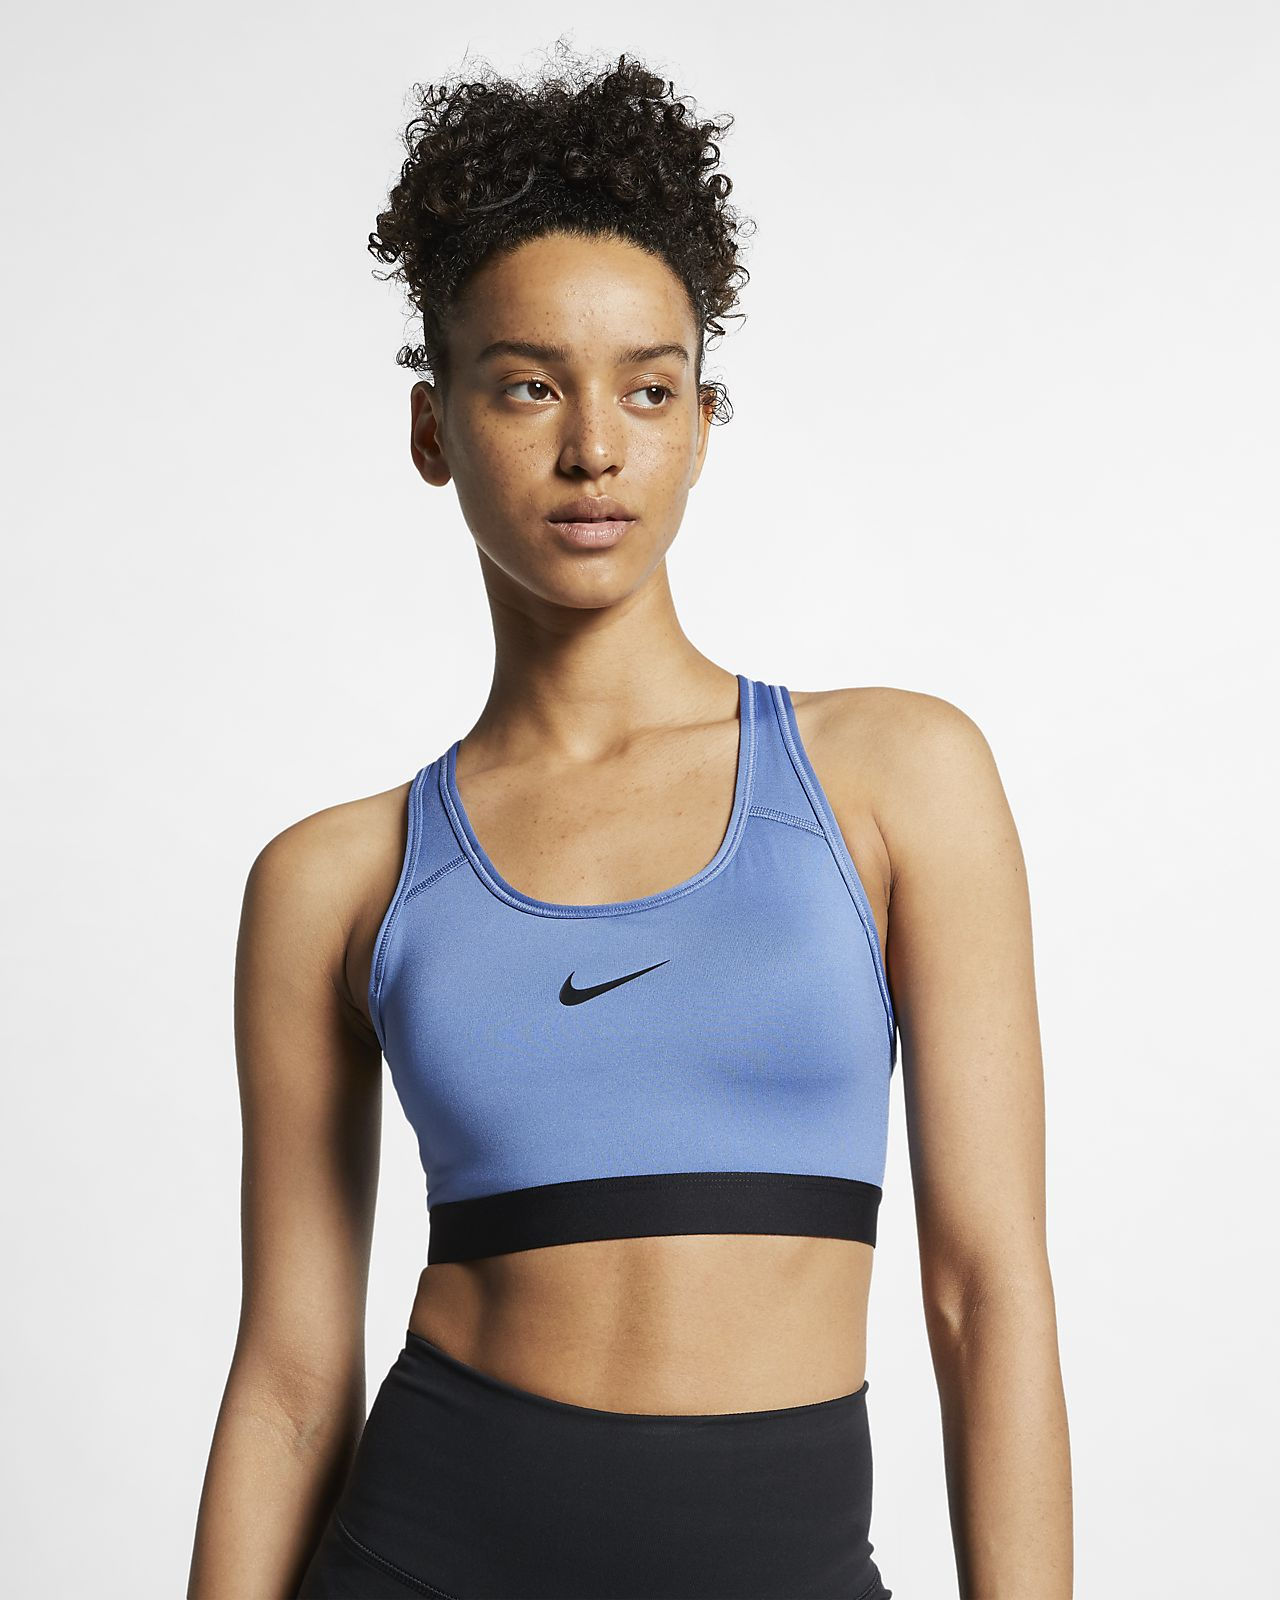 Nike Classic Padded Women's Medium-Support Sports Bra